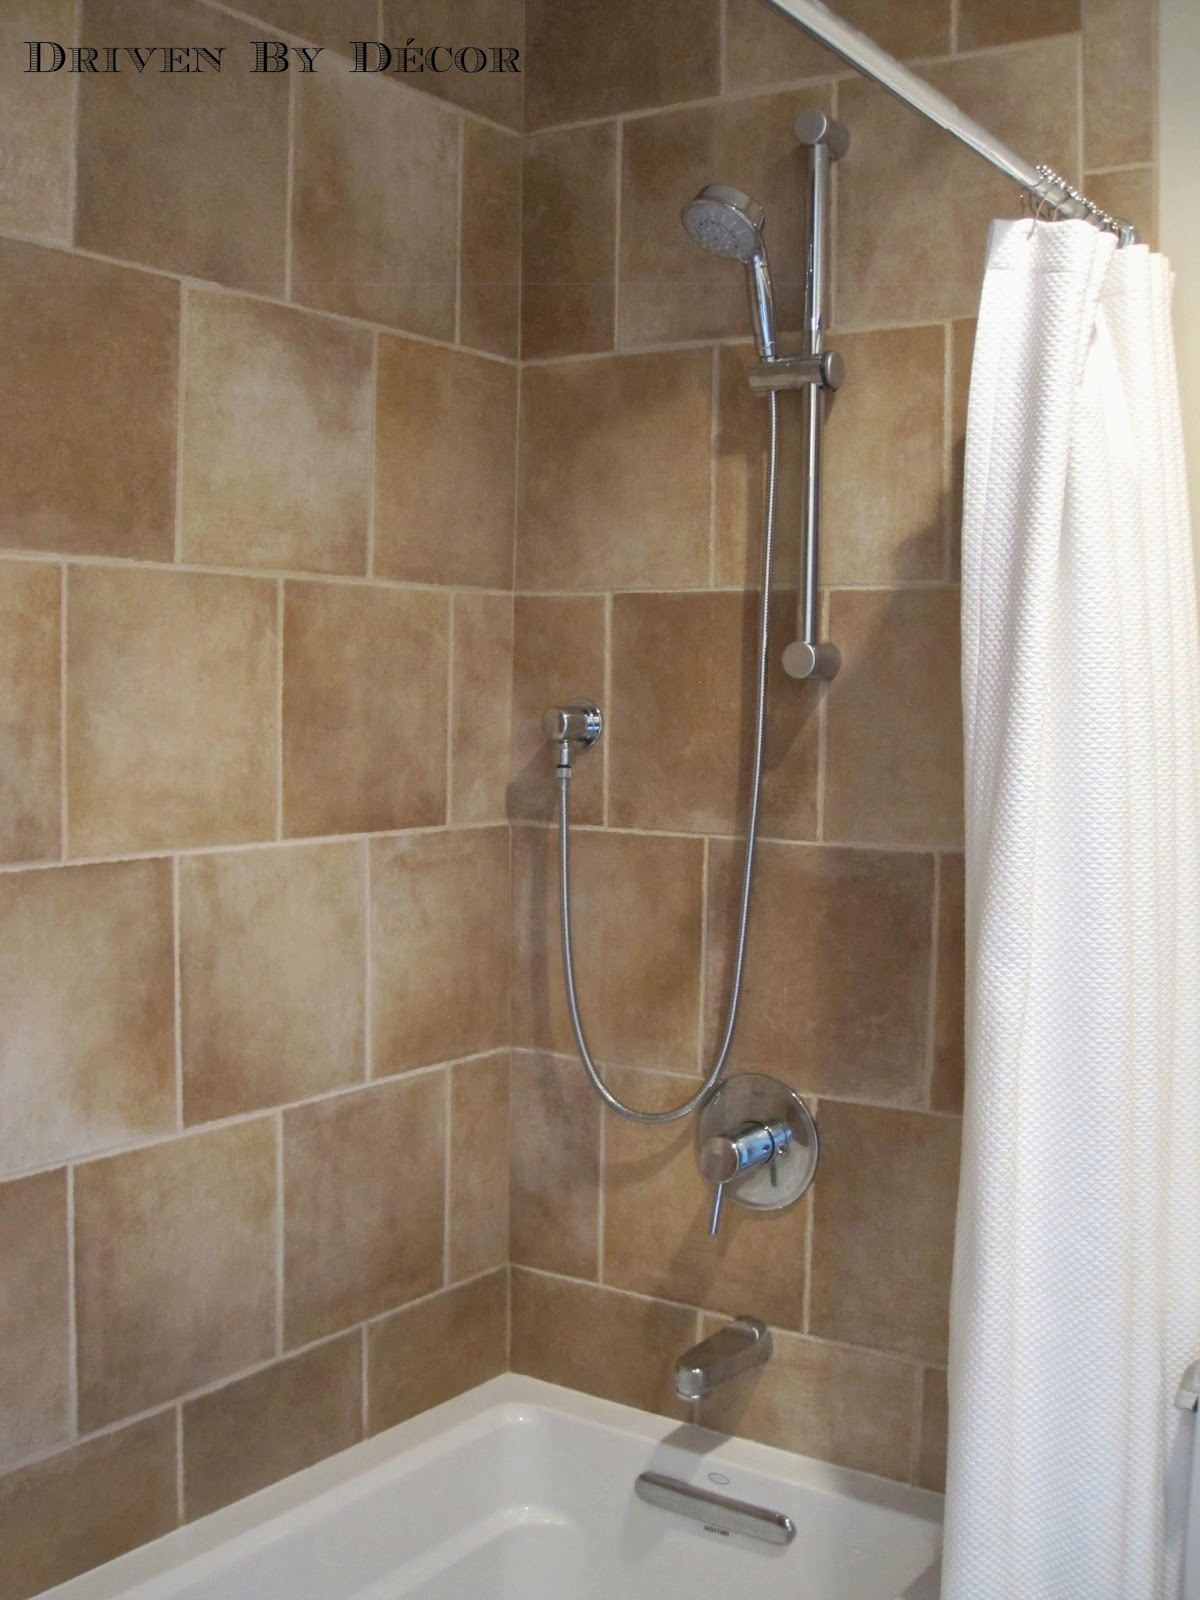 Bathroom Tile Decorating Ideas Bathroom Cabinet Hardware Pulls And Handles New Cabinet Hardware